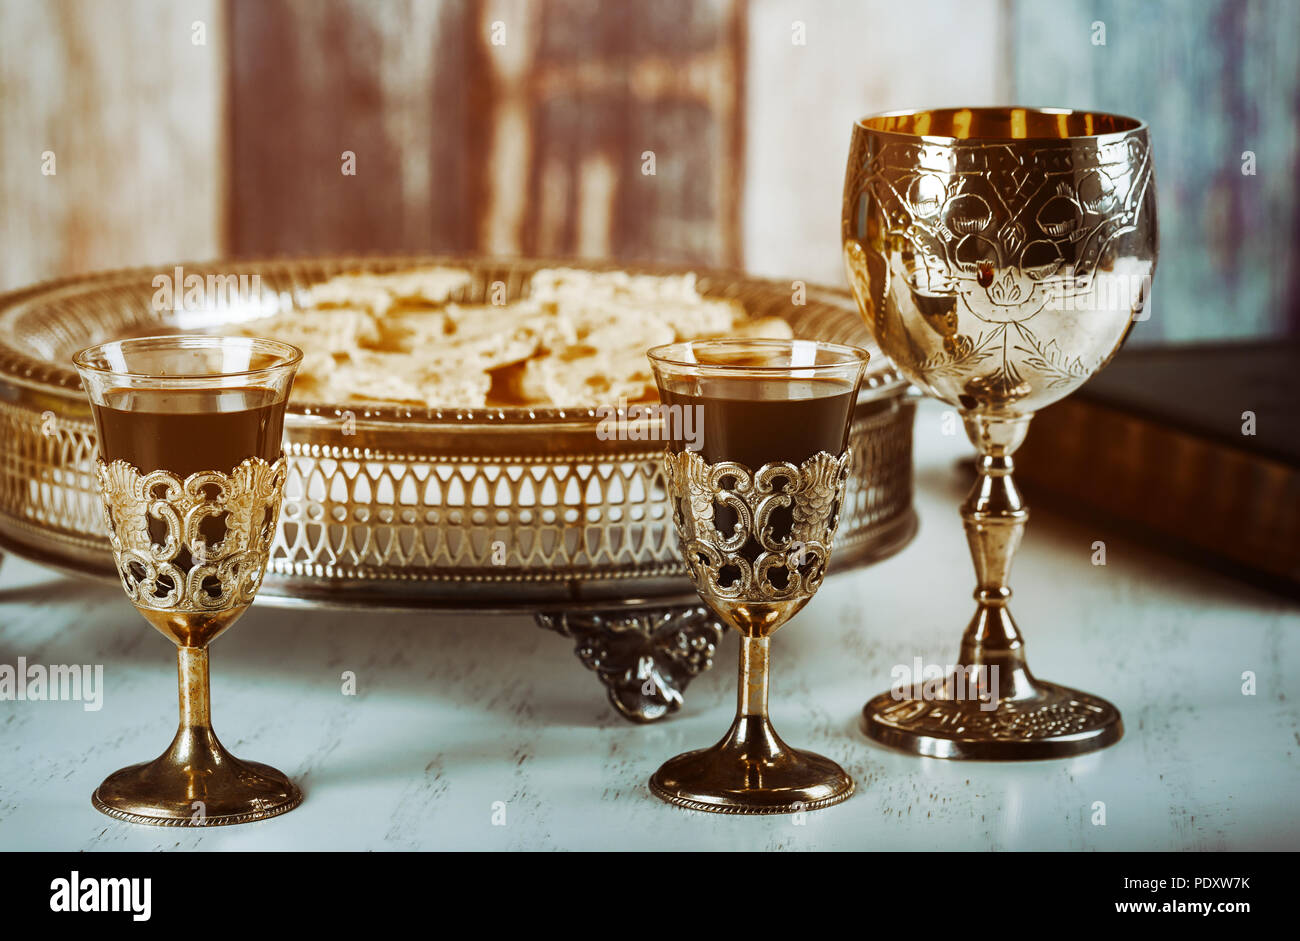 communion table photos & communion table images - page 8 - alamy